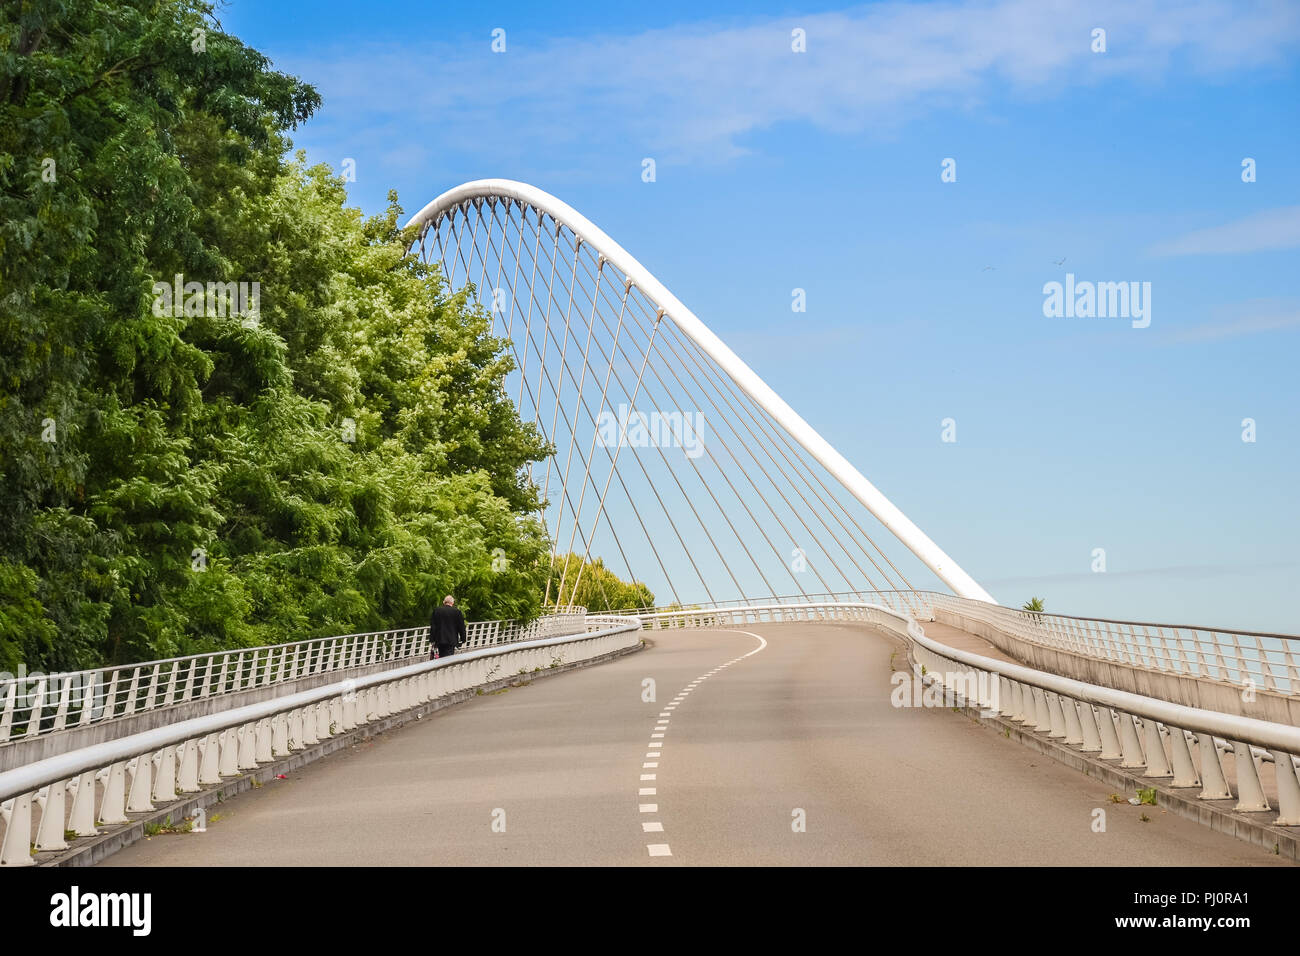 build a bridge and get over it stock photos build a bridge and get